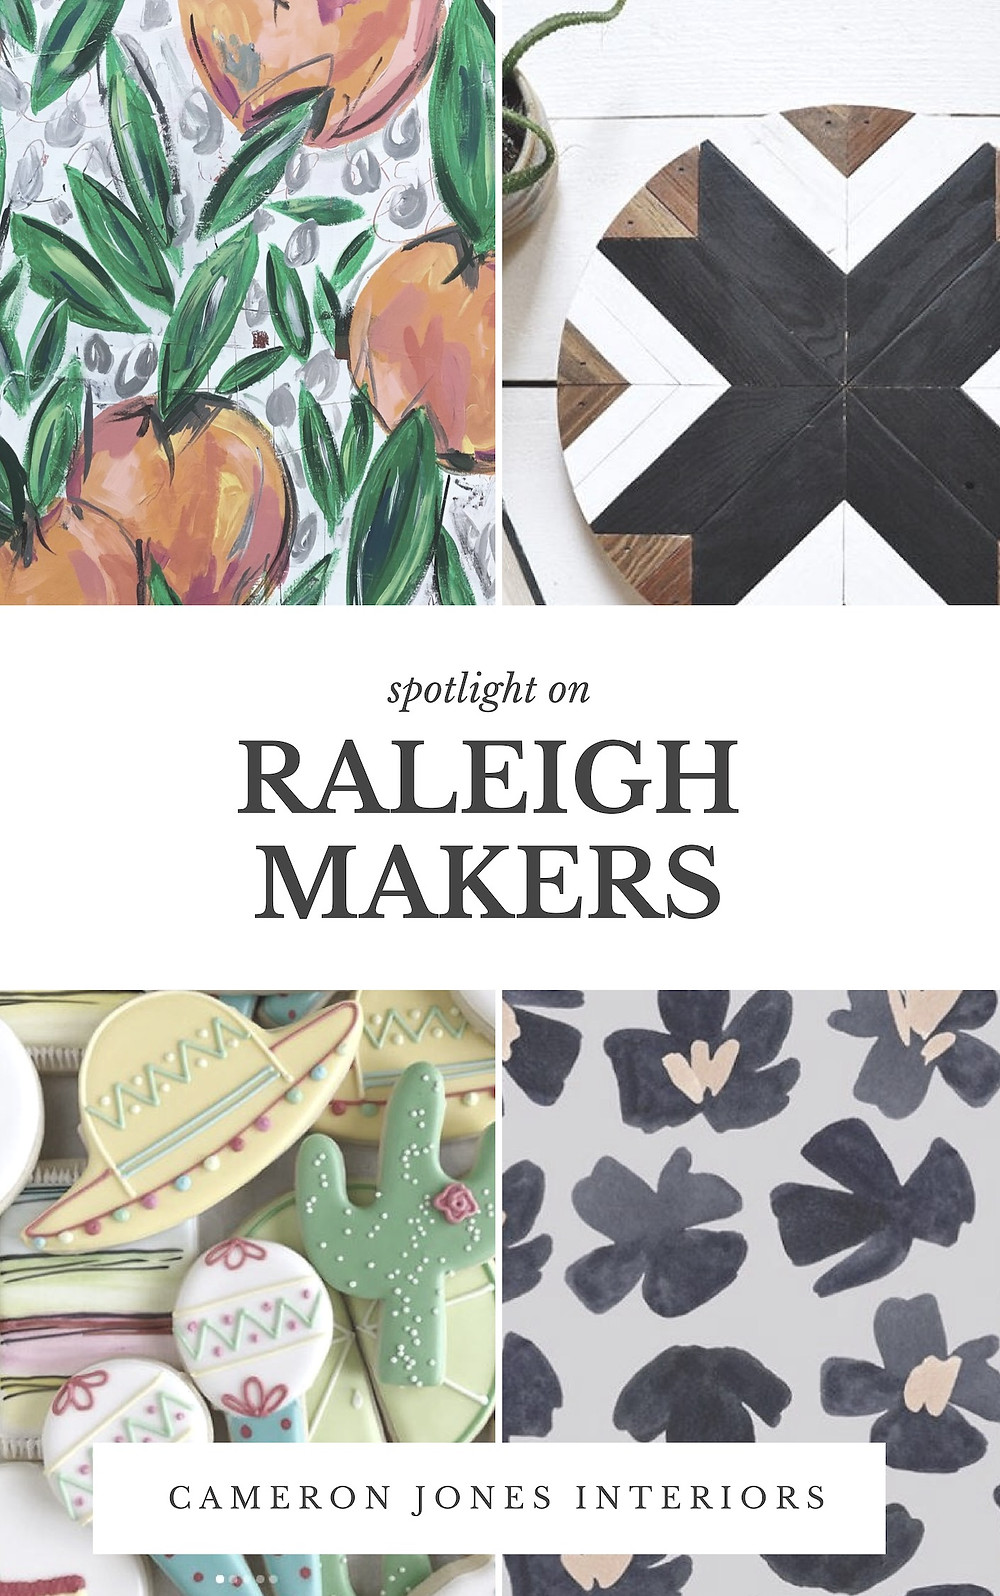 Local Raleigh Makers and Artists